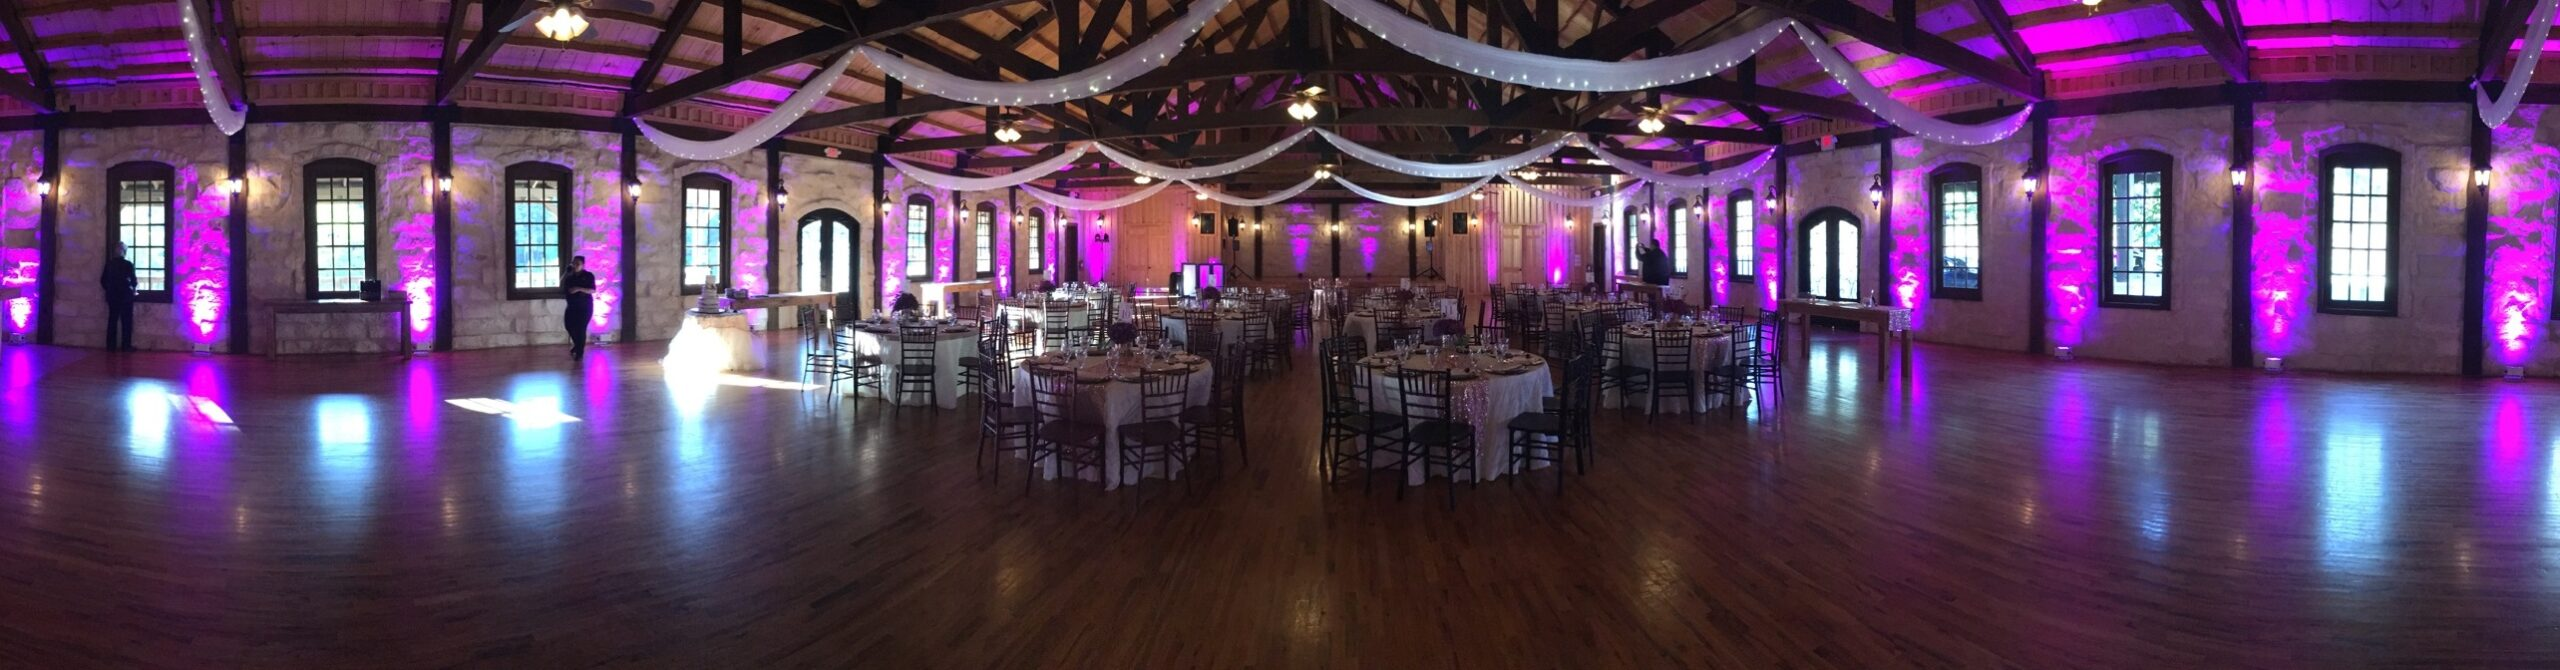 Houston Wedding DJ, DJs in Houston, Houston Up Lighting Decor for a Houston Wedding DJ at The Springs Events, Lighting Decor, Houston DJ, Wedding DJs in Houston, Awesome Music Entertainment, Awesome Event Pros, Awesome Lighting Decor, AME DJs, Sonido DJ Sammy De Houston